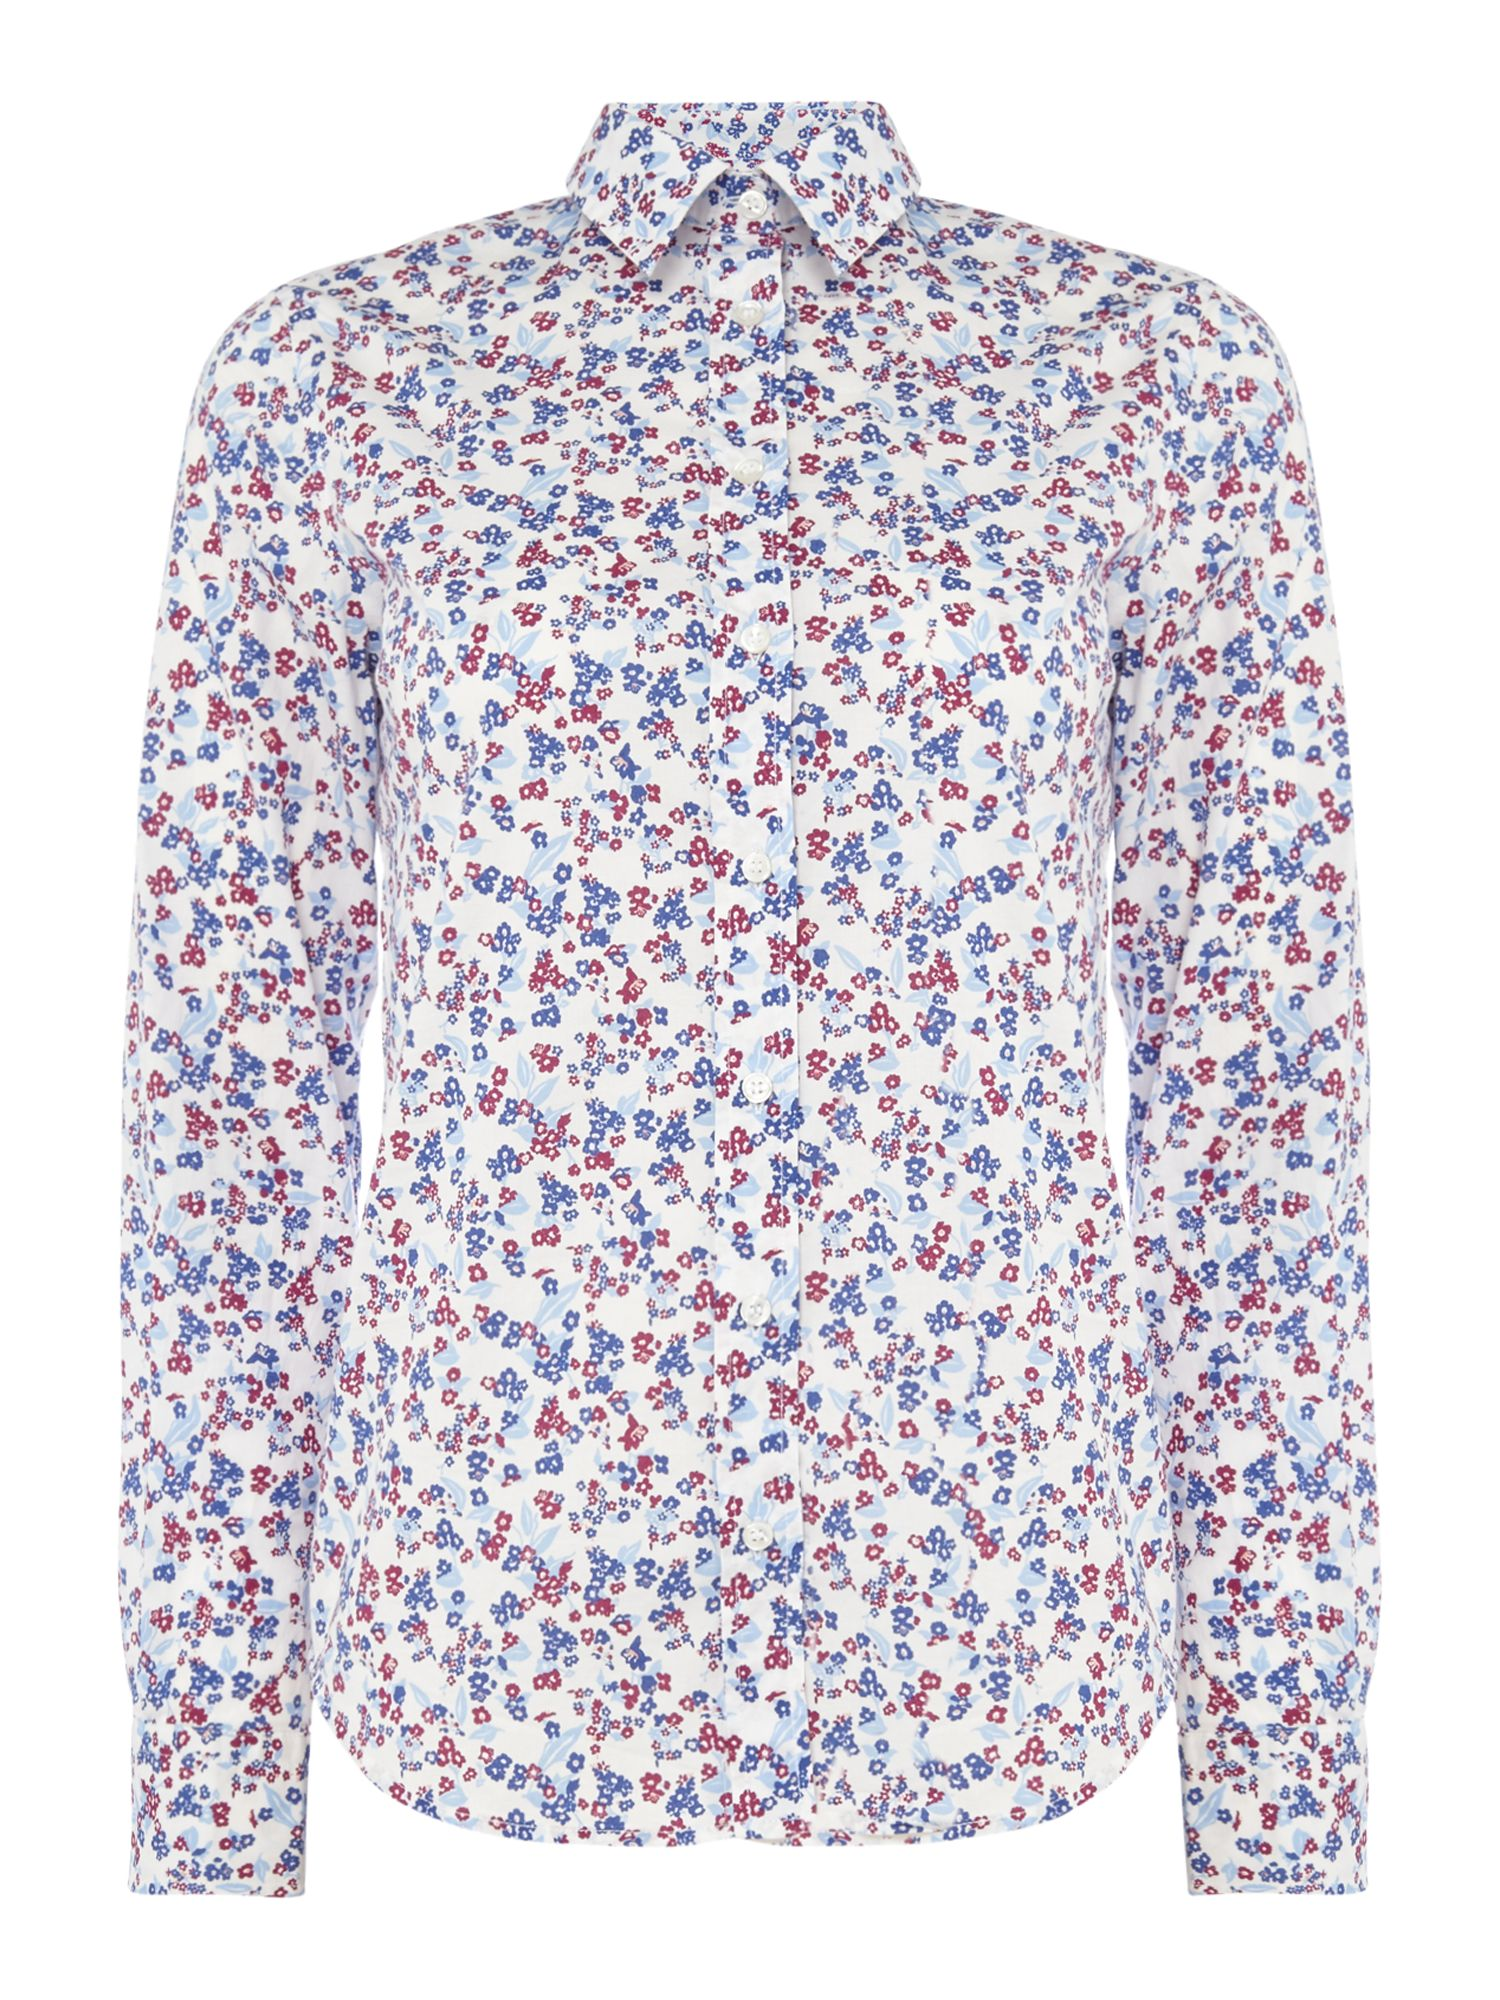 Gant Mini Floral Shirt In Stretch Broadcloth, White